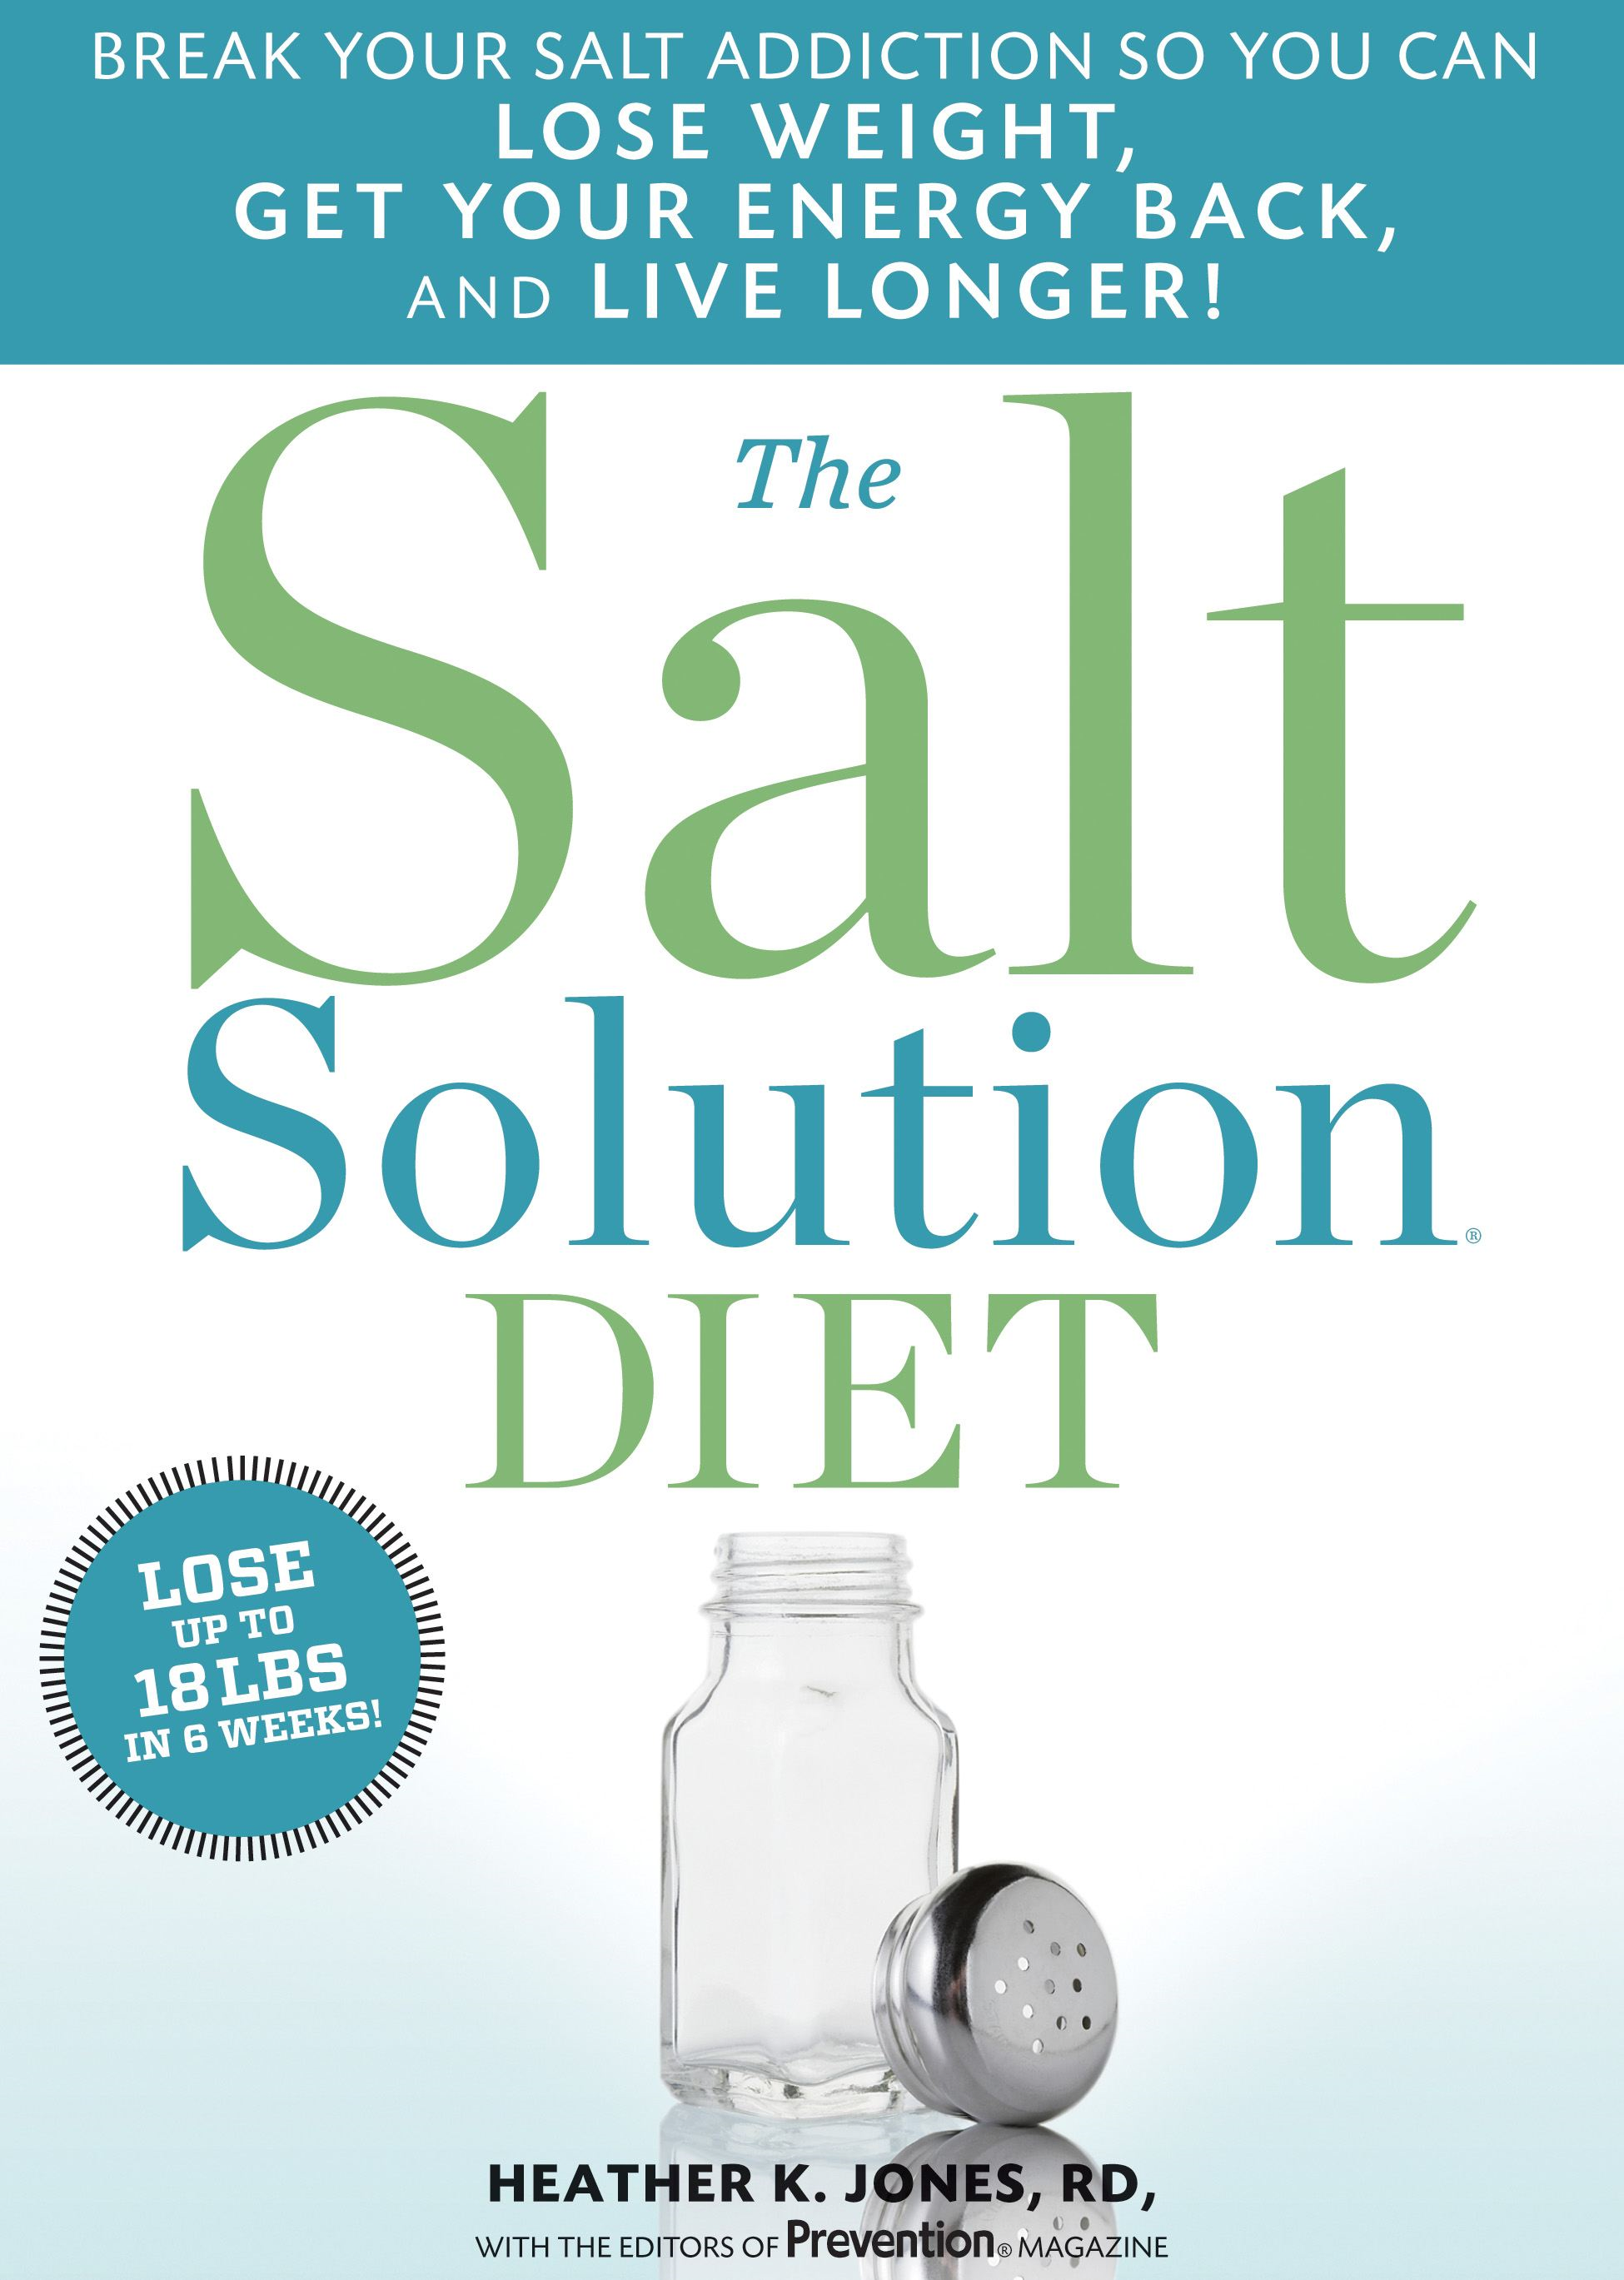 The Salt Solution Diet: Break your salt addiction so you can lose weight get your energy back and live longer!